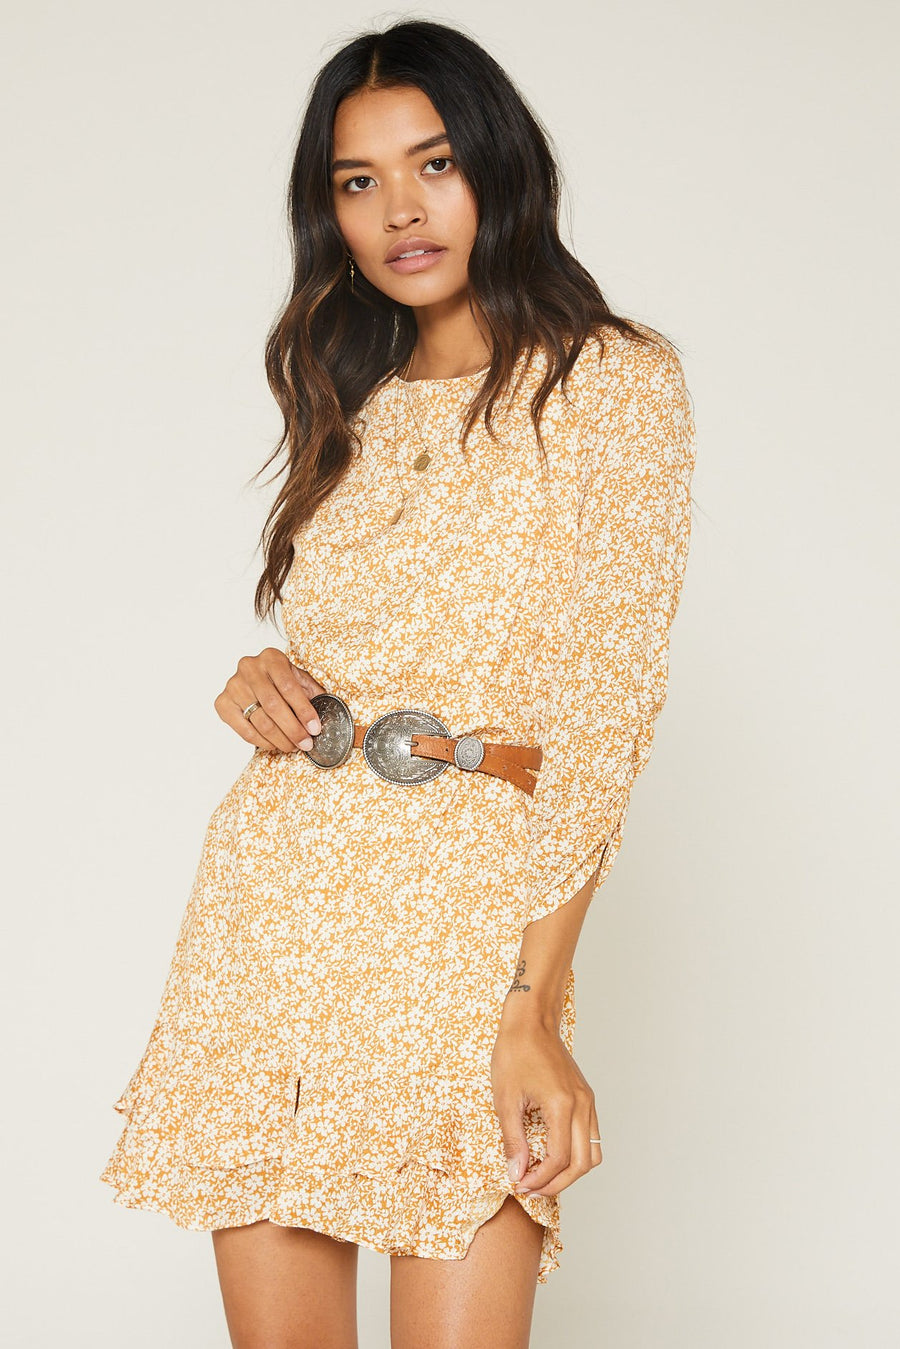 Wild Honey Mini Dress